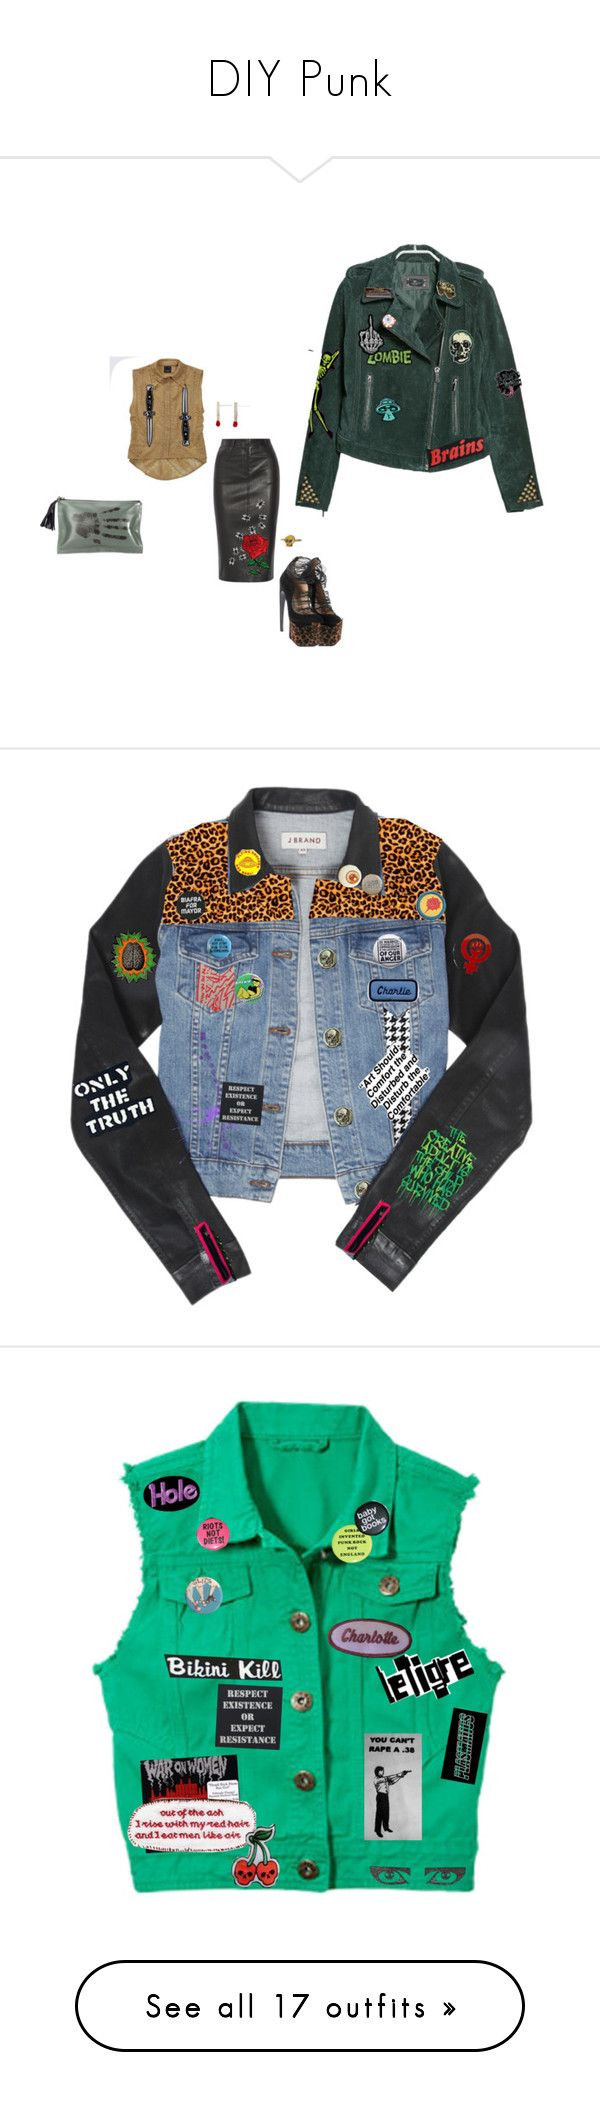 """""""DIY Punk"""" by keeperoftheart ❤ liked on Polyvore featuring Joseph, Thierry Mugler, Tokyo Rose, MANGO, Casio, NewbarK, J Brand, Payne, Stephen Sprouse and Pretty Vacant"""